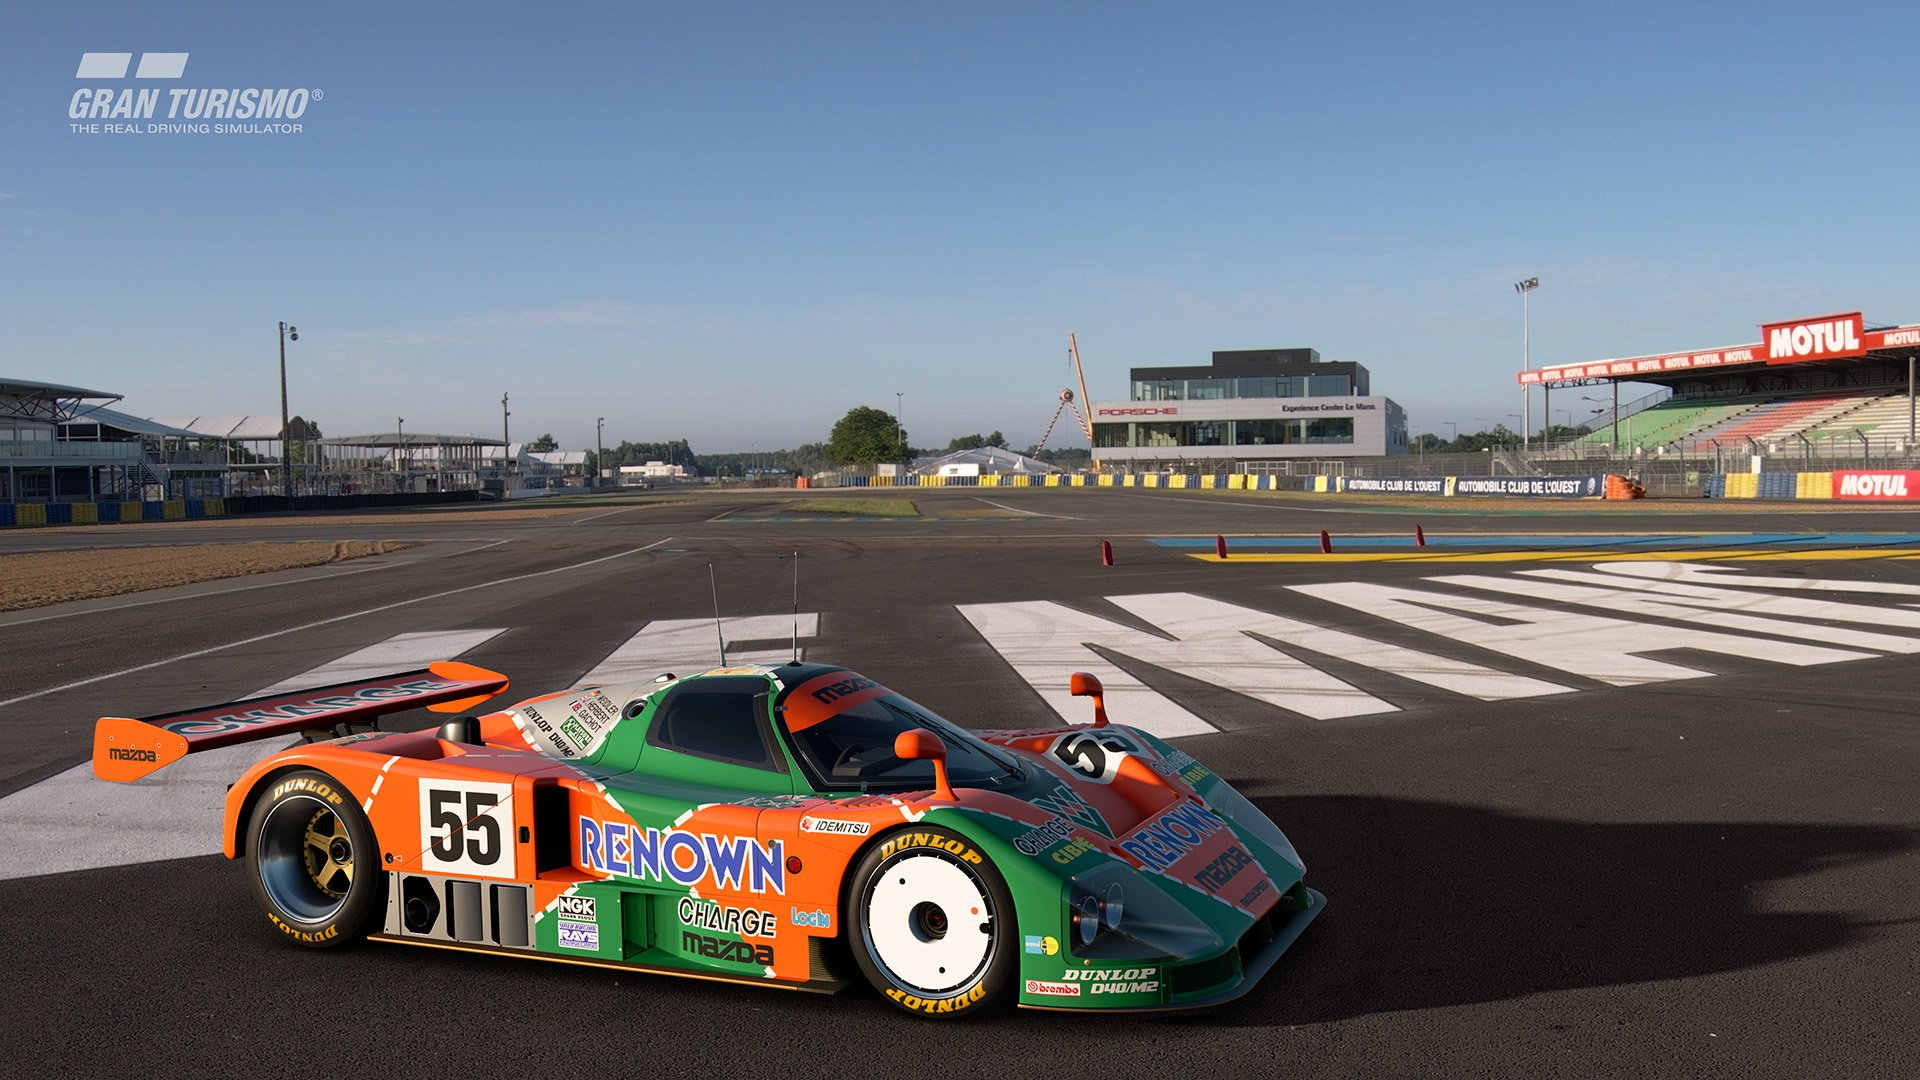 The First Time A Current Get Hybrid F Car Is Available In The Gran Turismo Series Also Included In The New Update Is The Le Mans Winning Mazda B